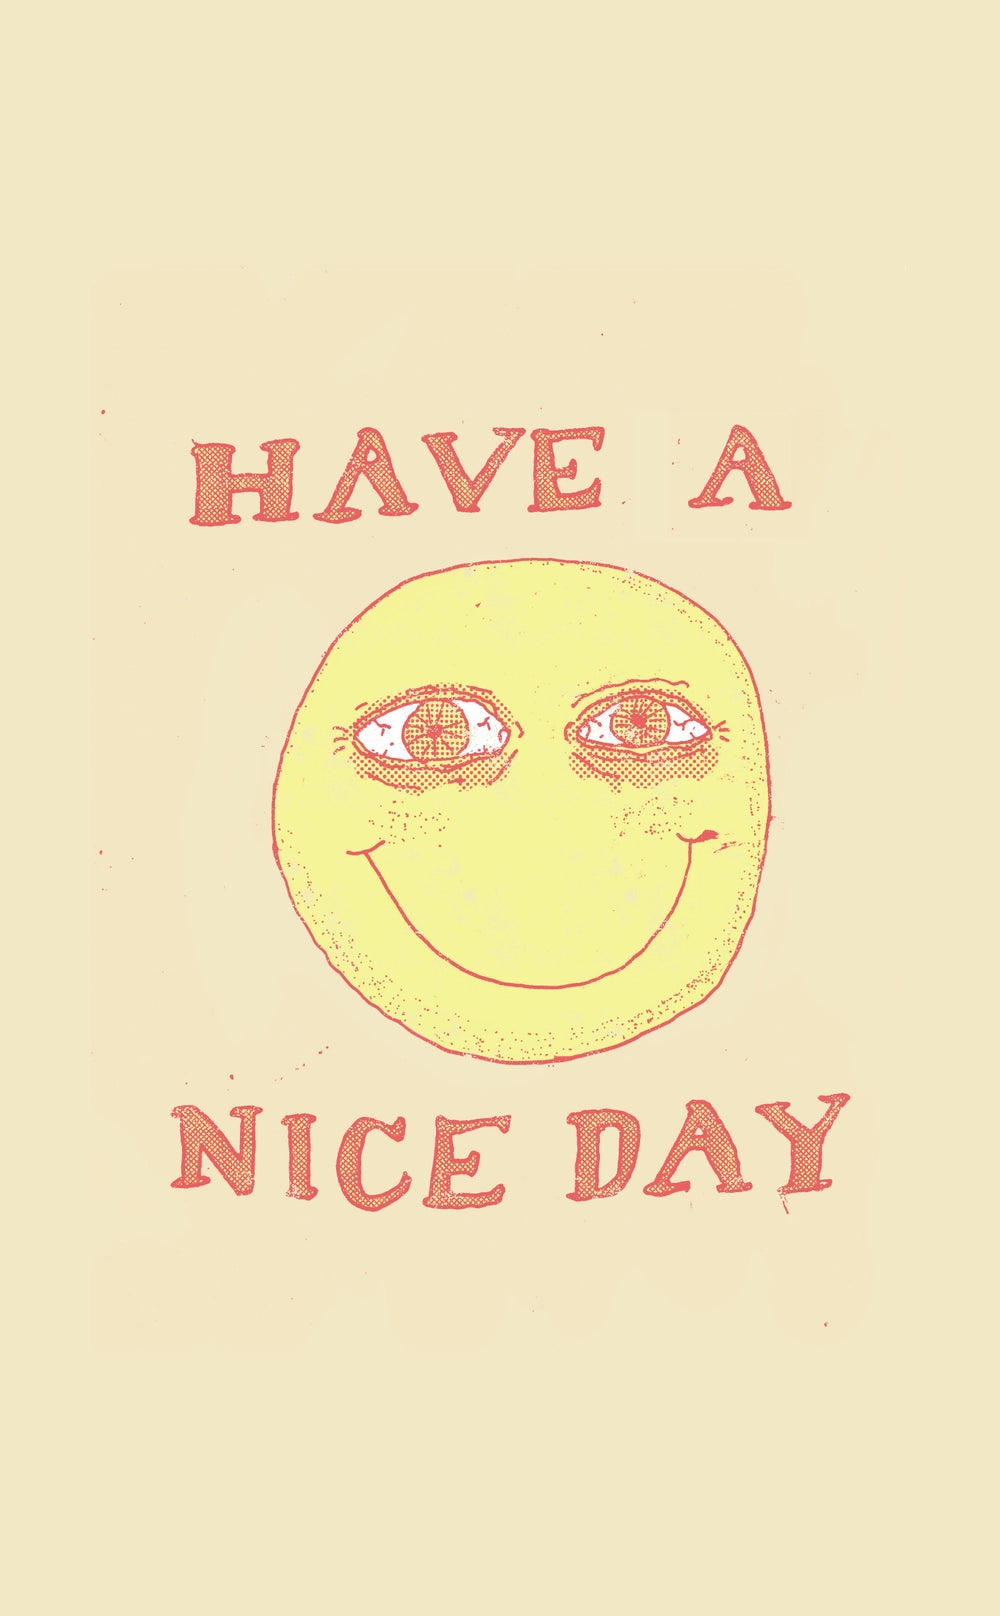 Image of Nice Day